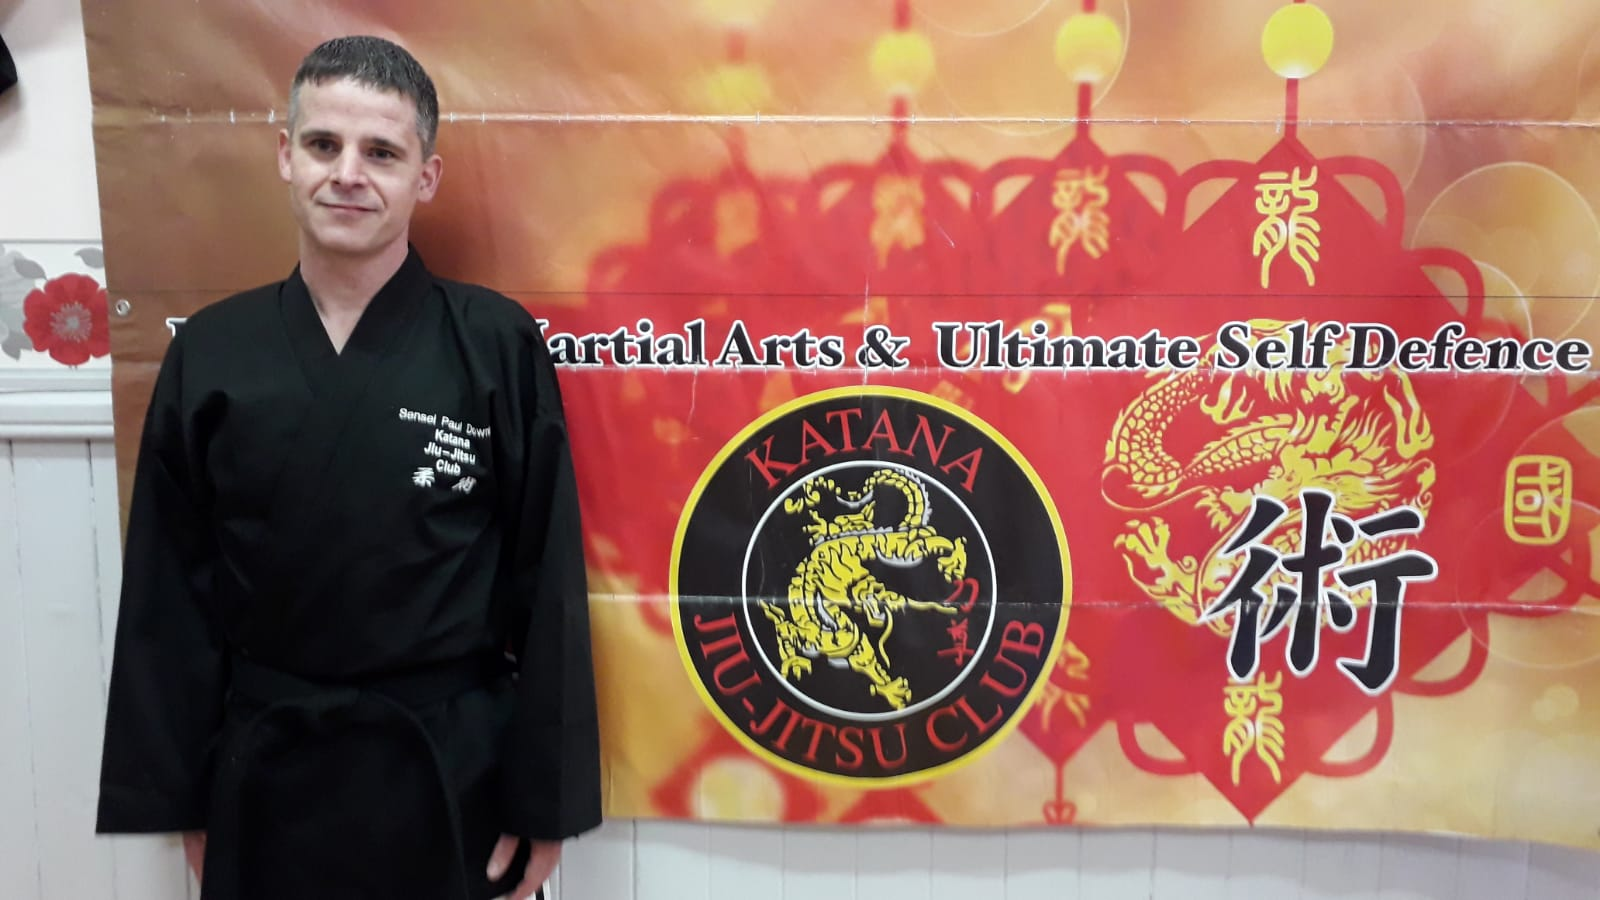 Sensei Paul Downing